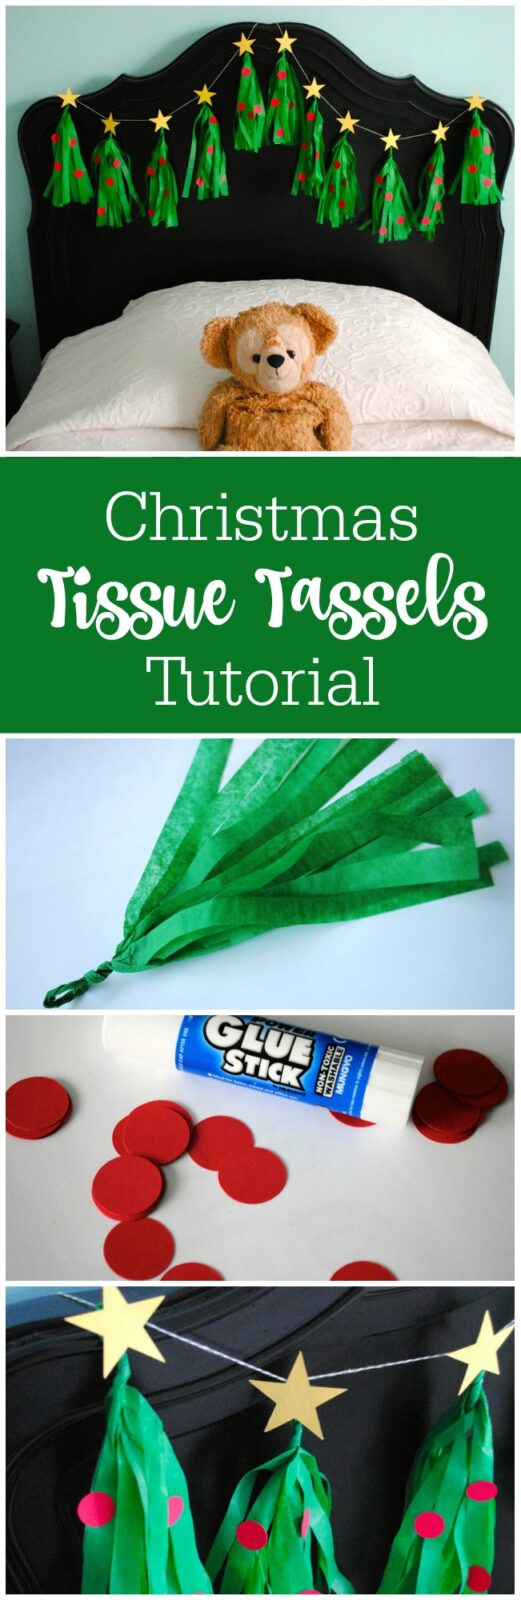 How to make Christmas tree tissue tassels by The Party Teacher